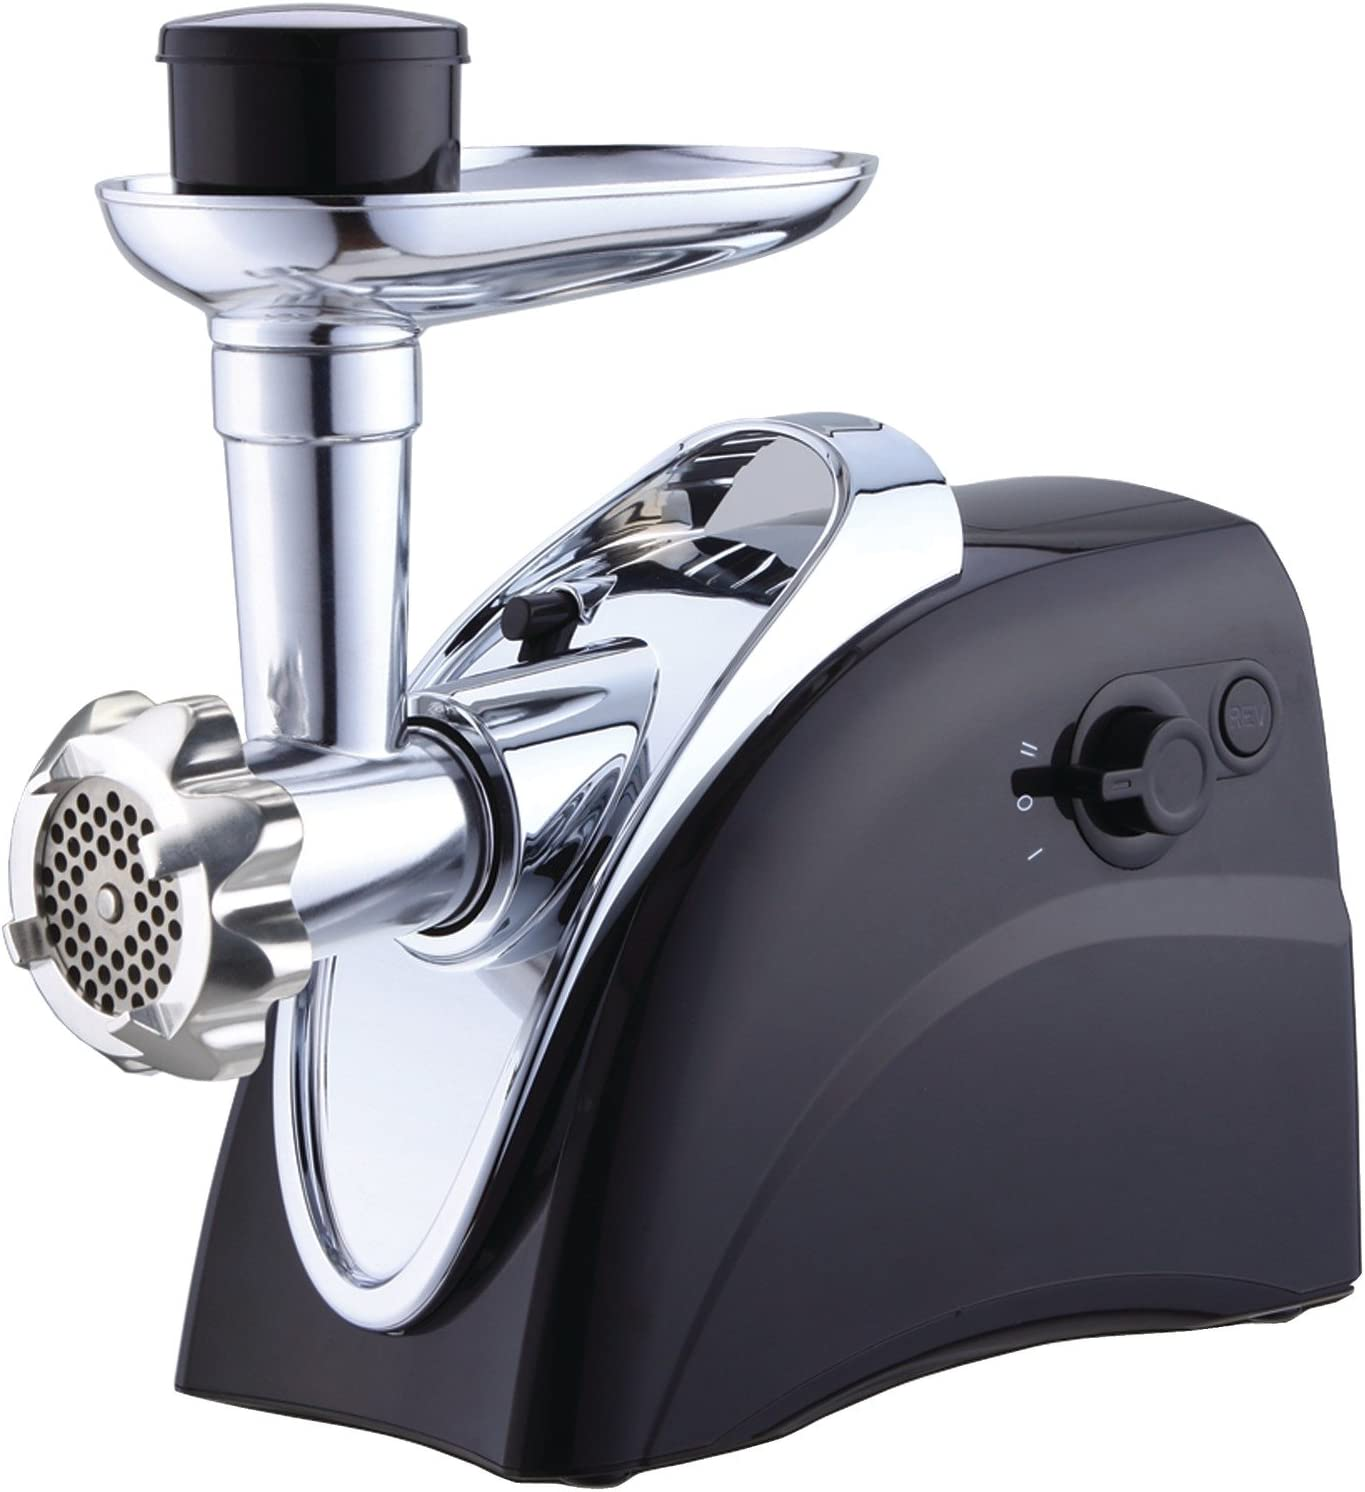 Brentwood Boss Easy to Use Max 60% OFF Grinder Black Sausage Stuffer Bargain